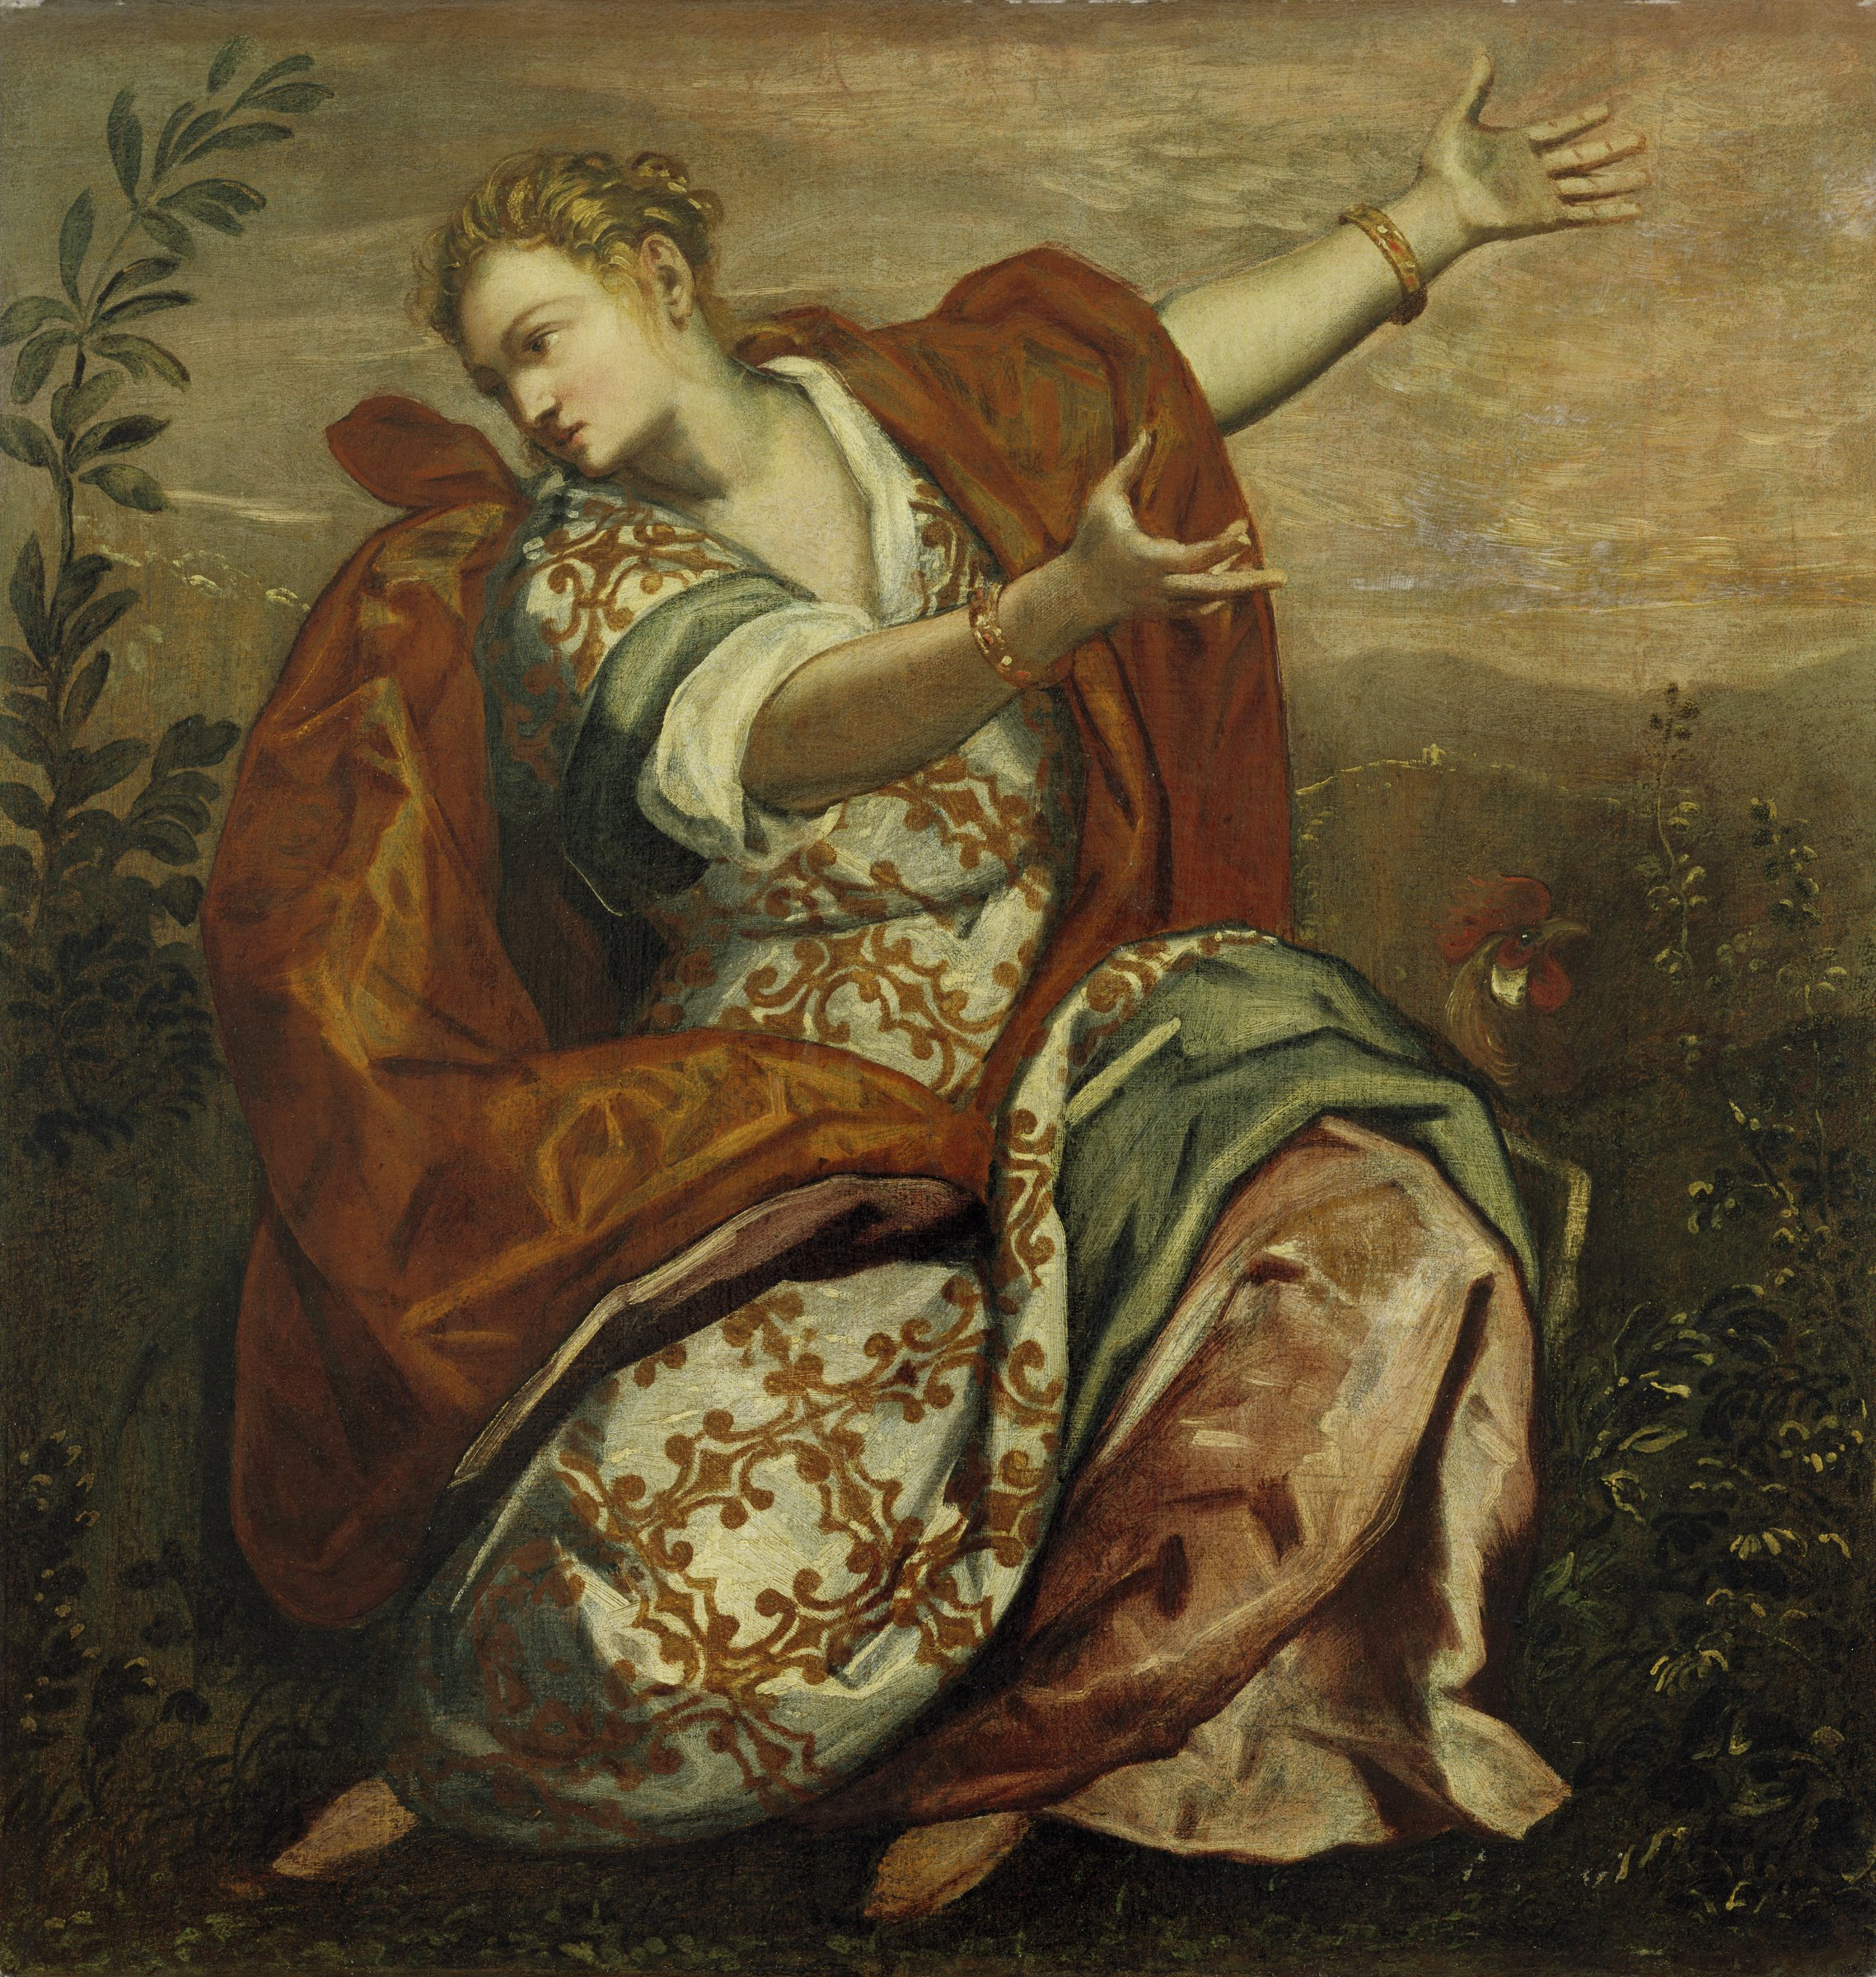 A seated woman in an elaborate Renaissance dress gestures expressively with her arms to express the importance of remaining watchful.